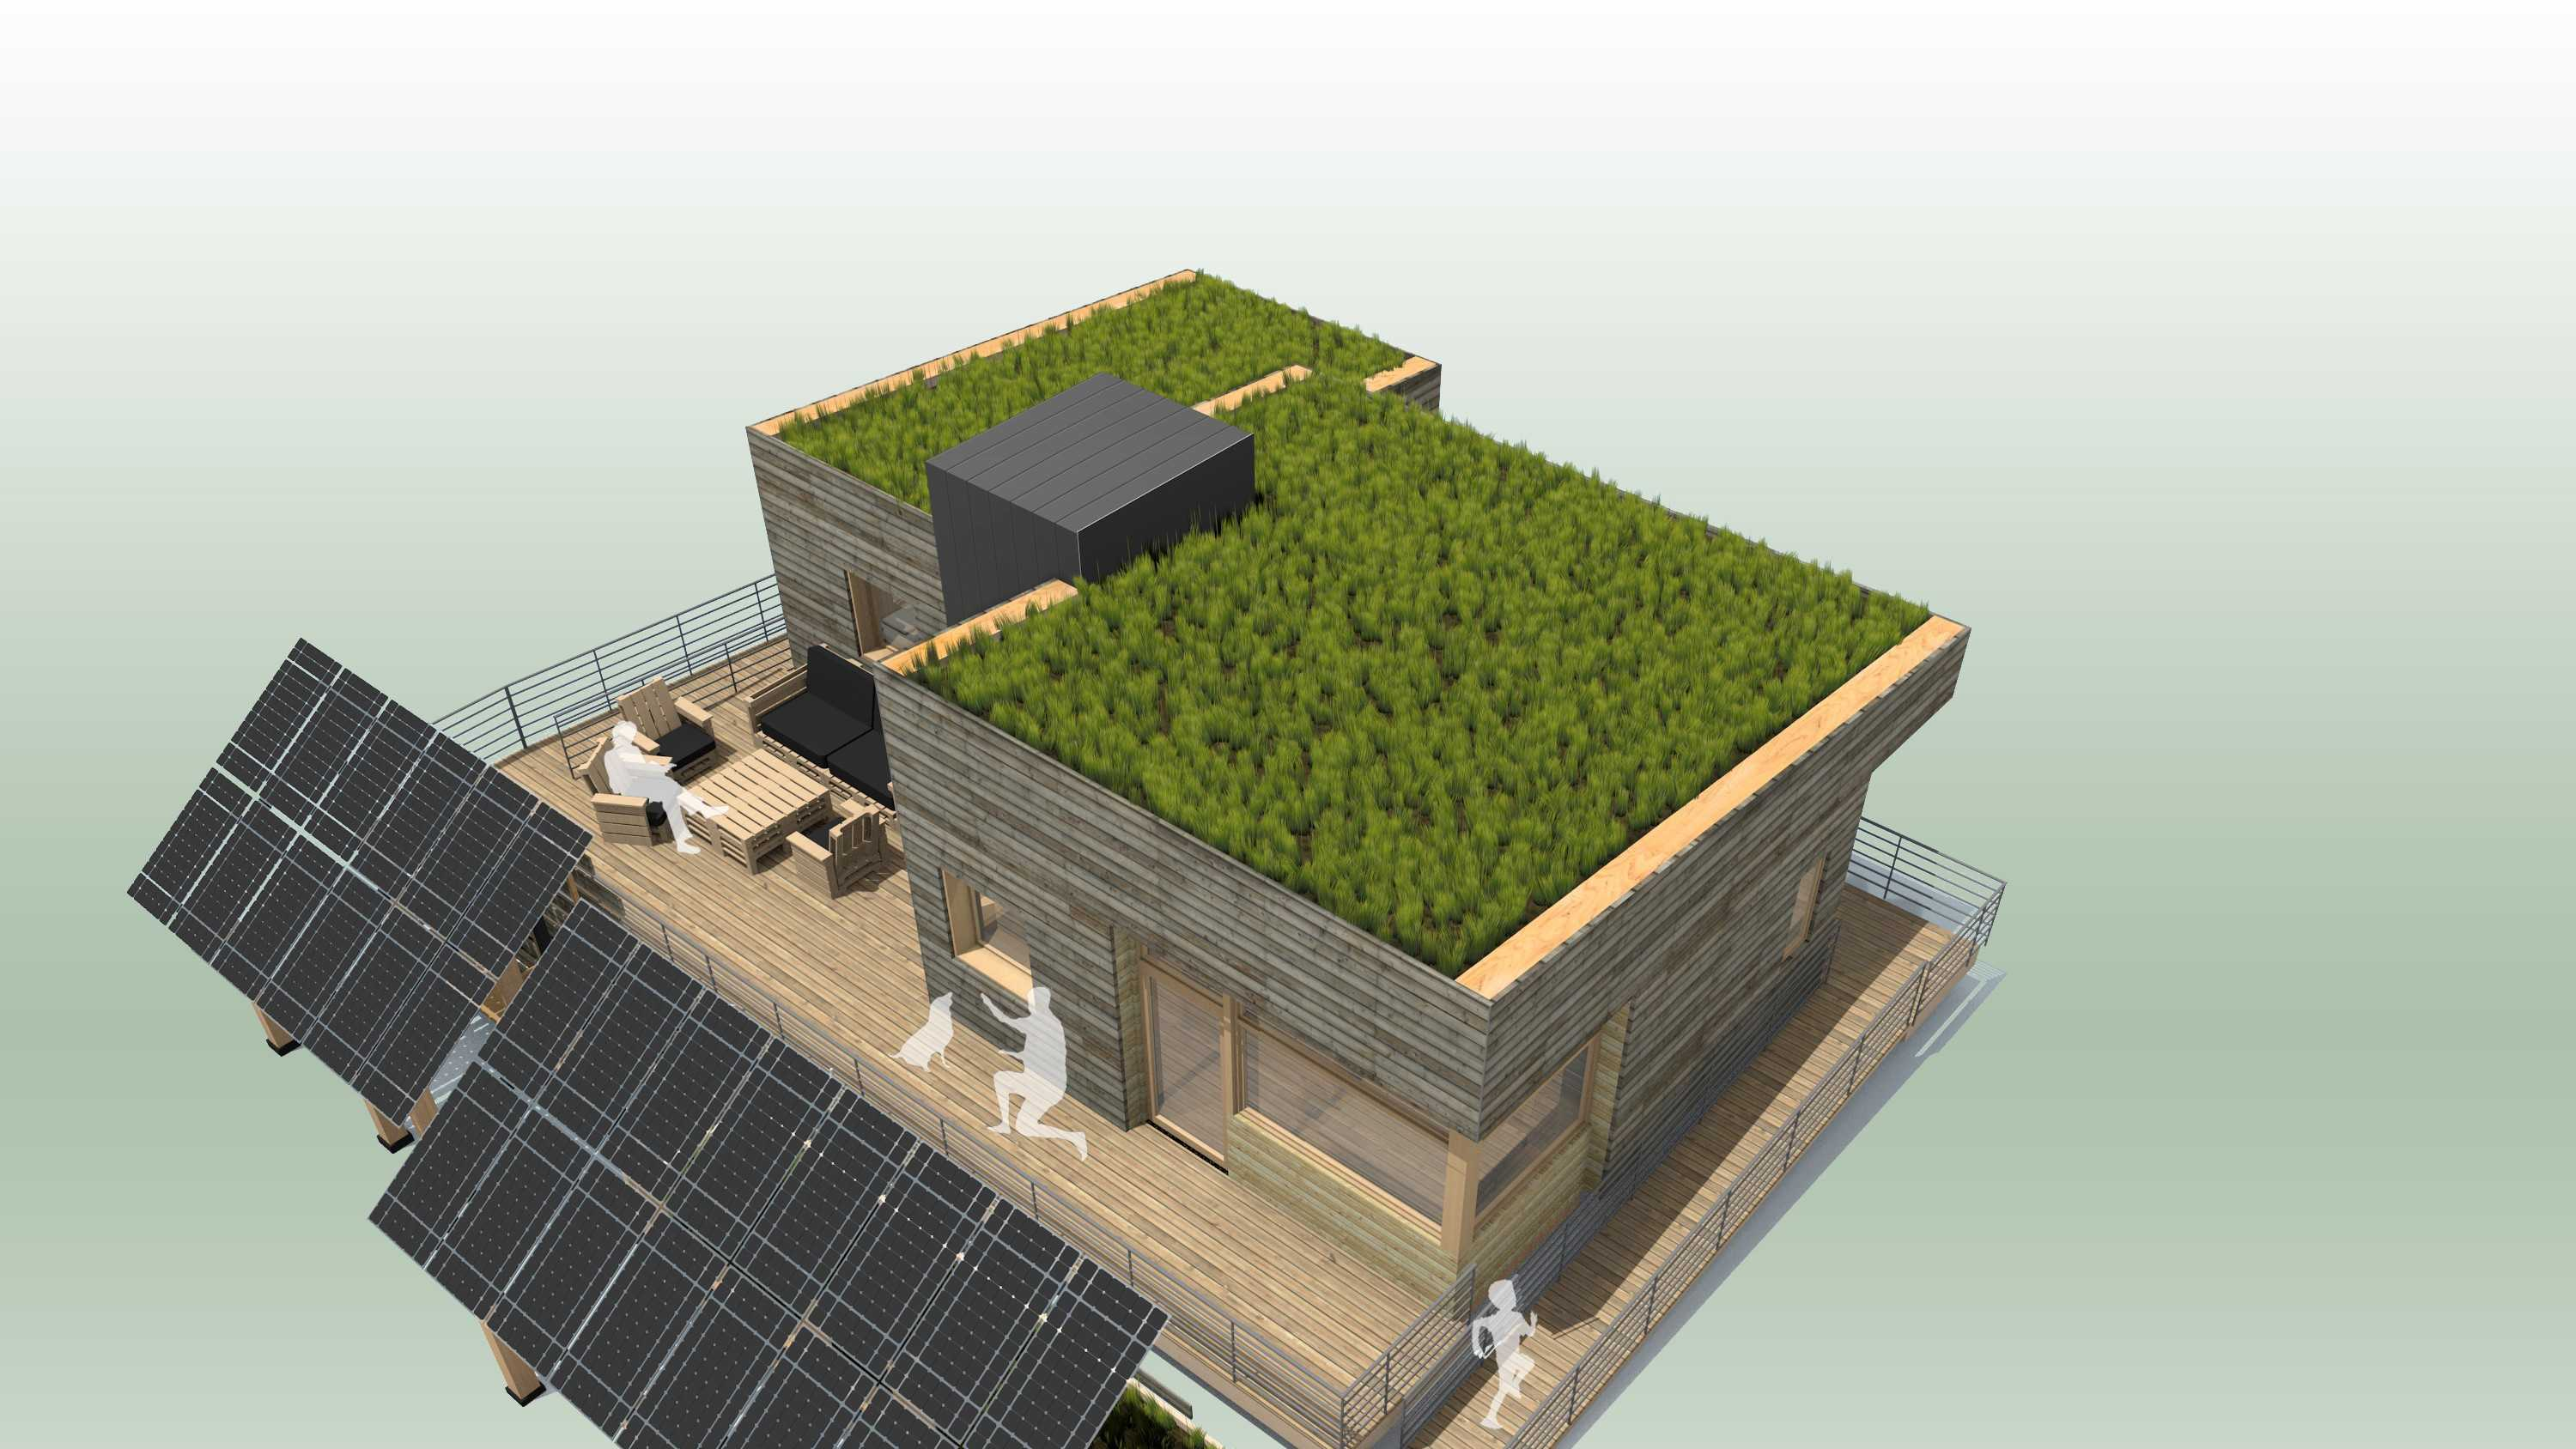 Middlebury's InSite solar home design